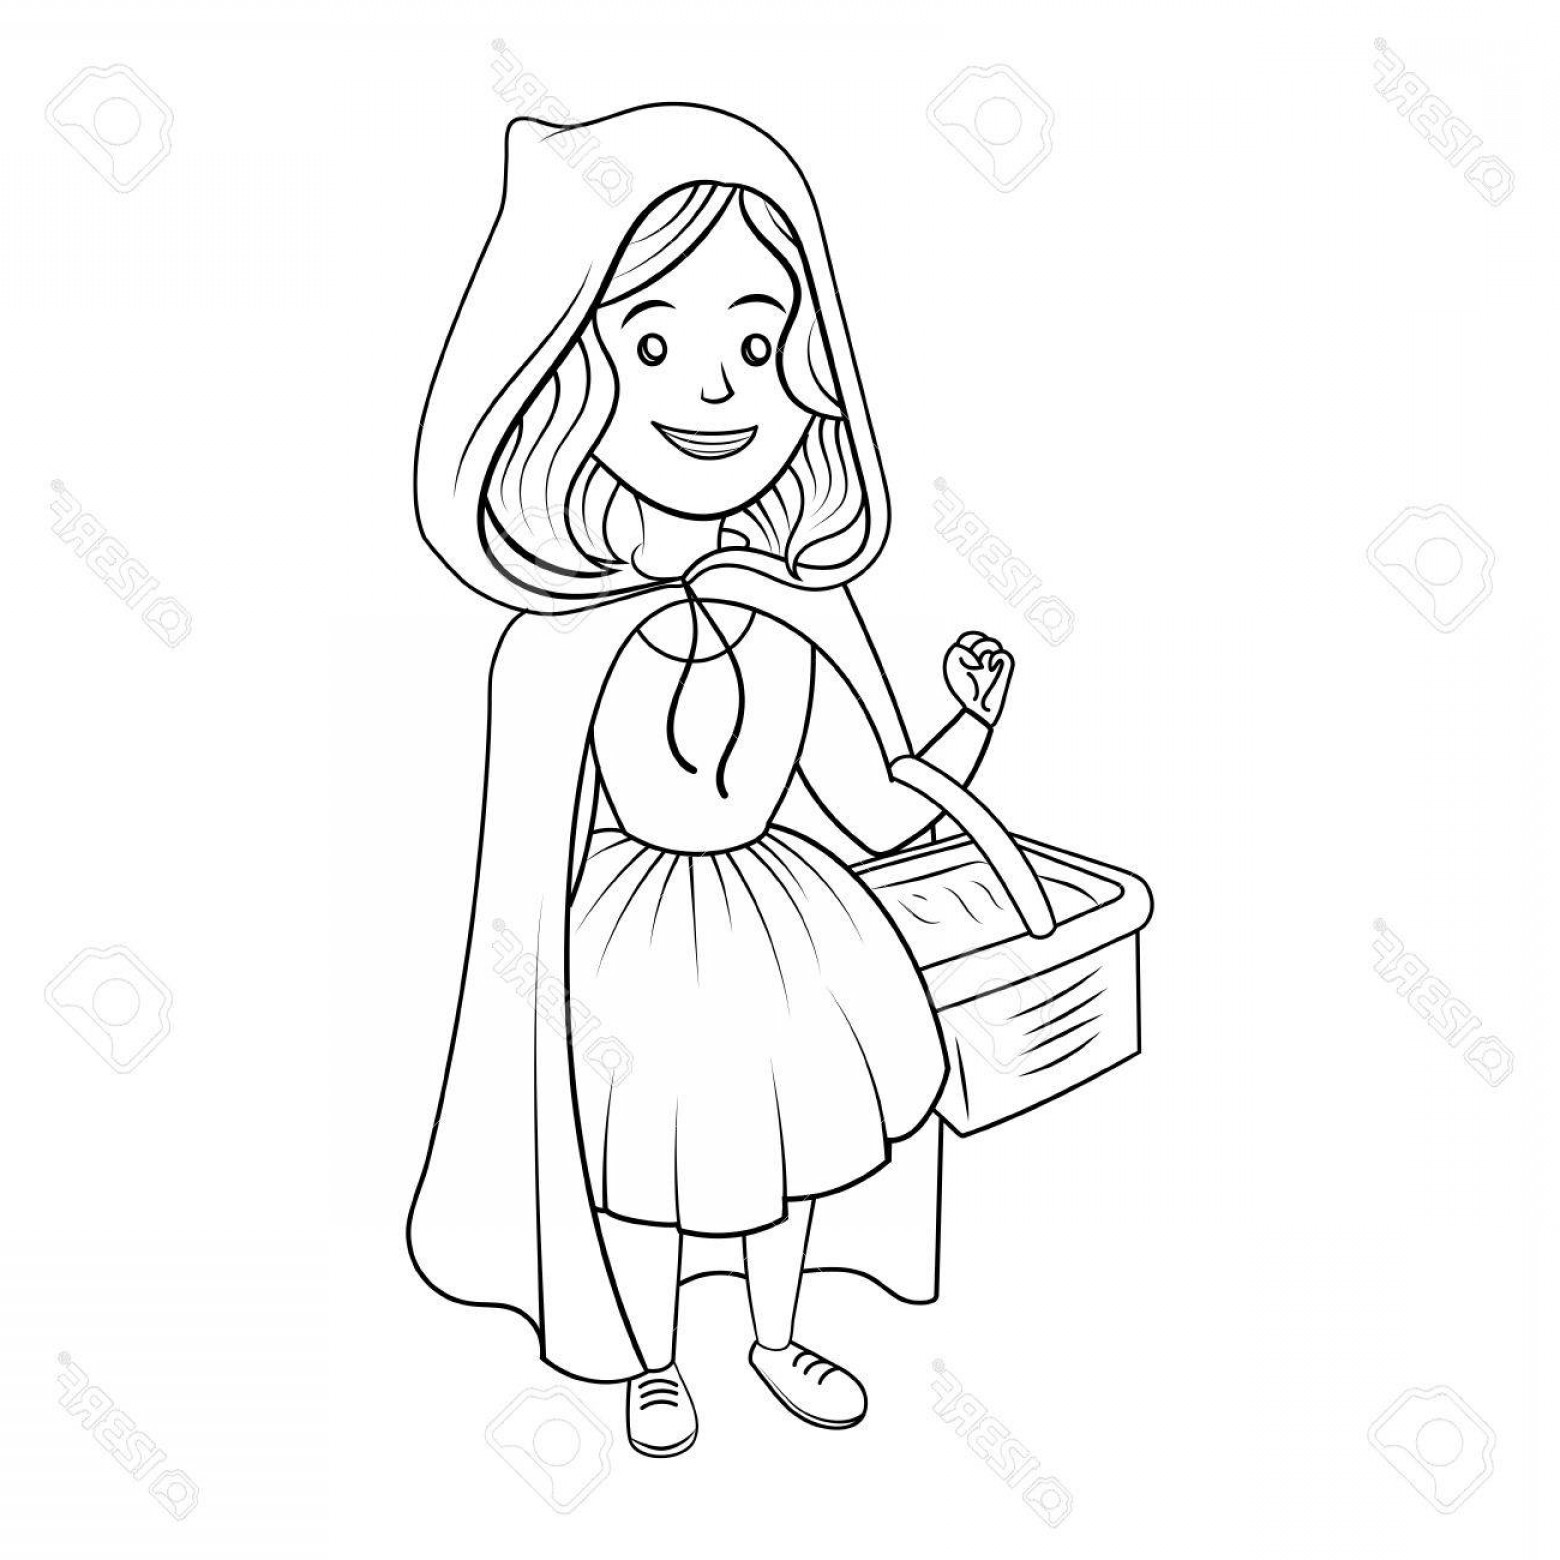 Library Of Red Riding Hood Graphic Download Black And